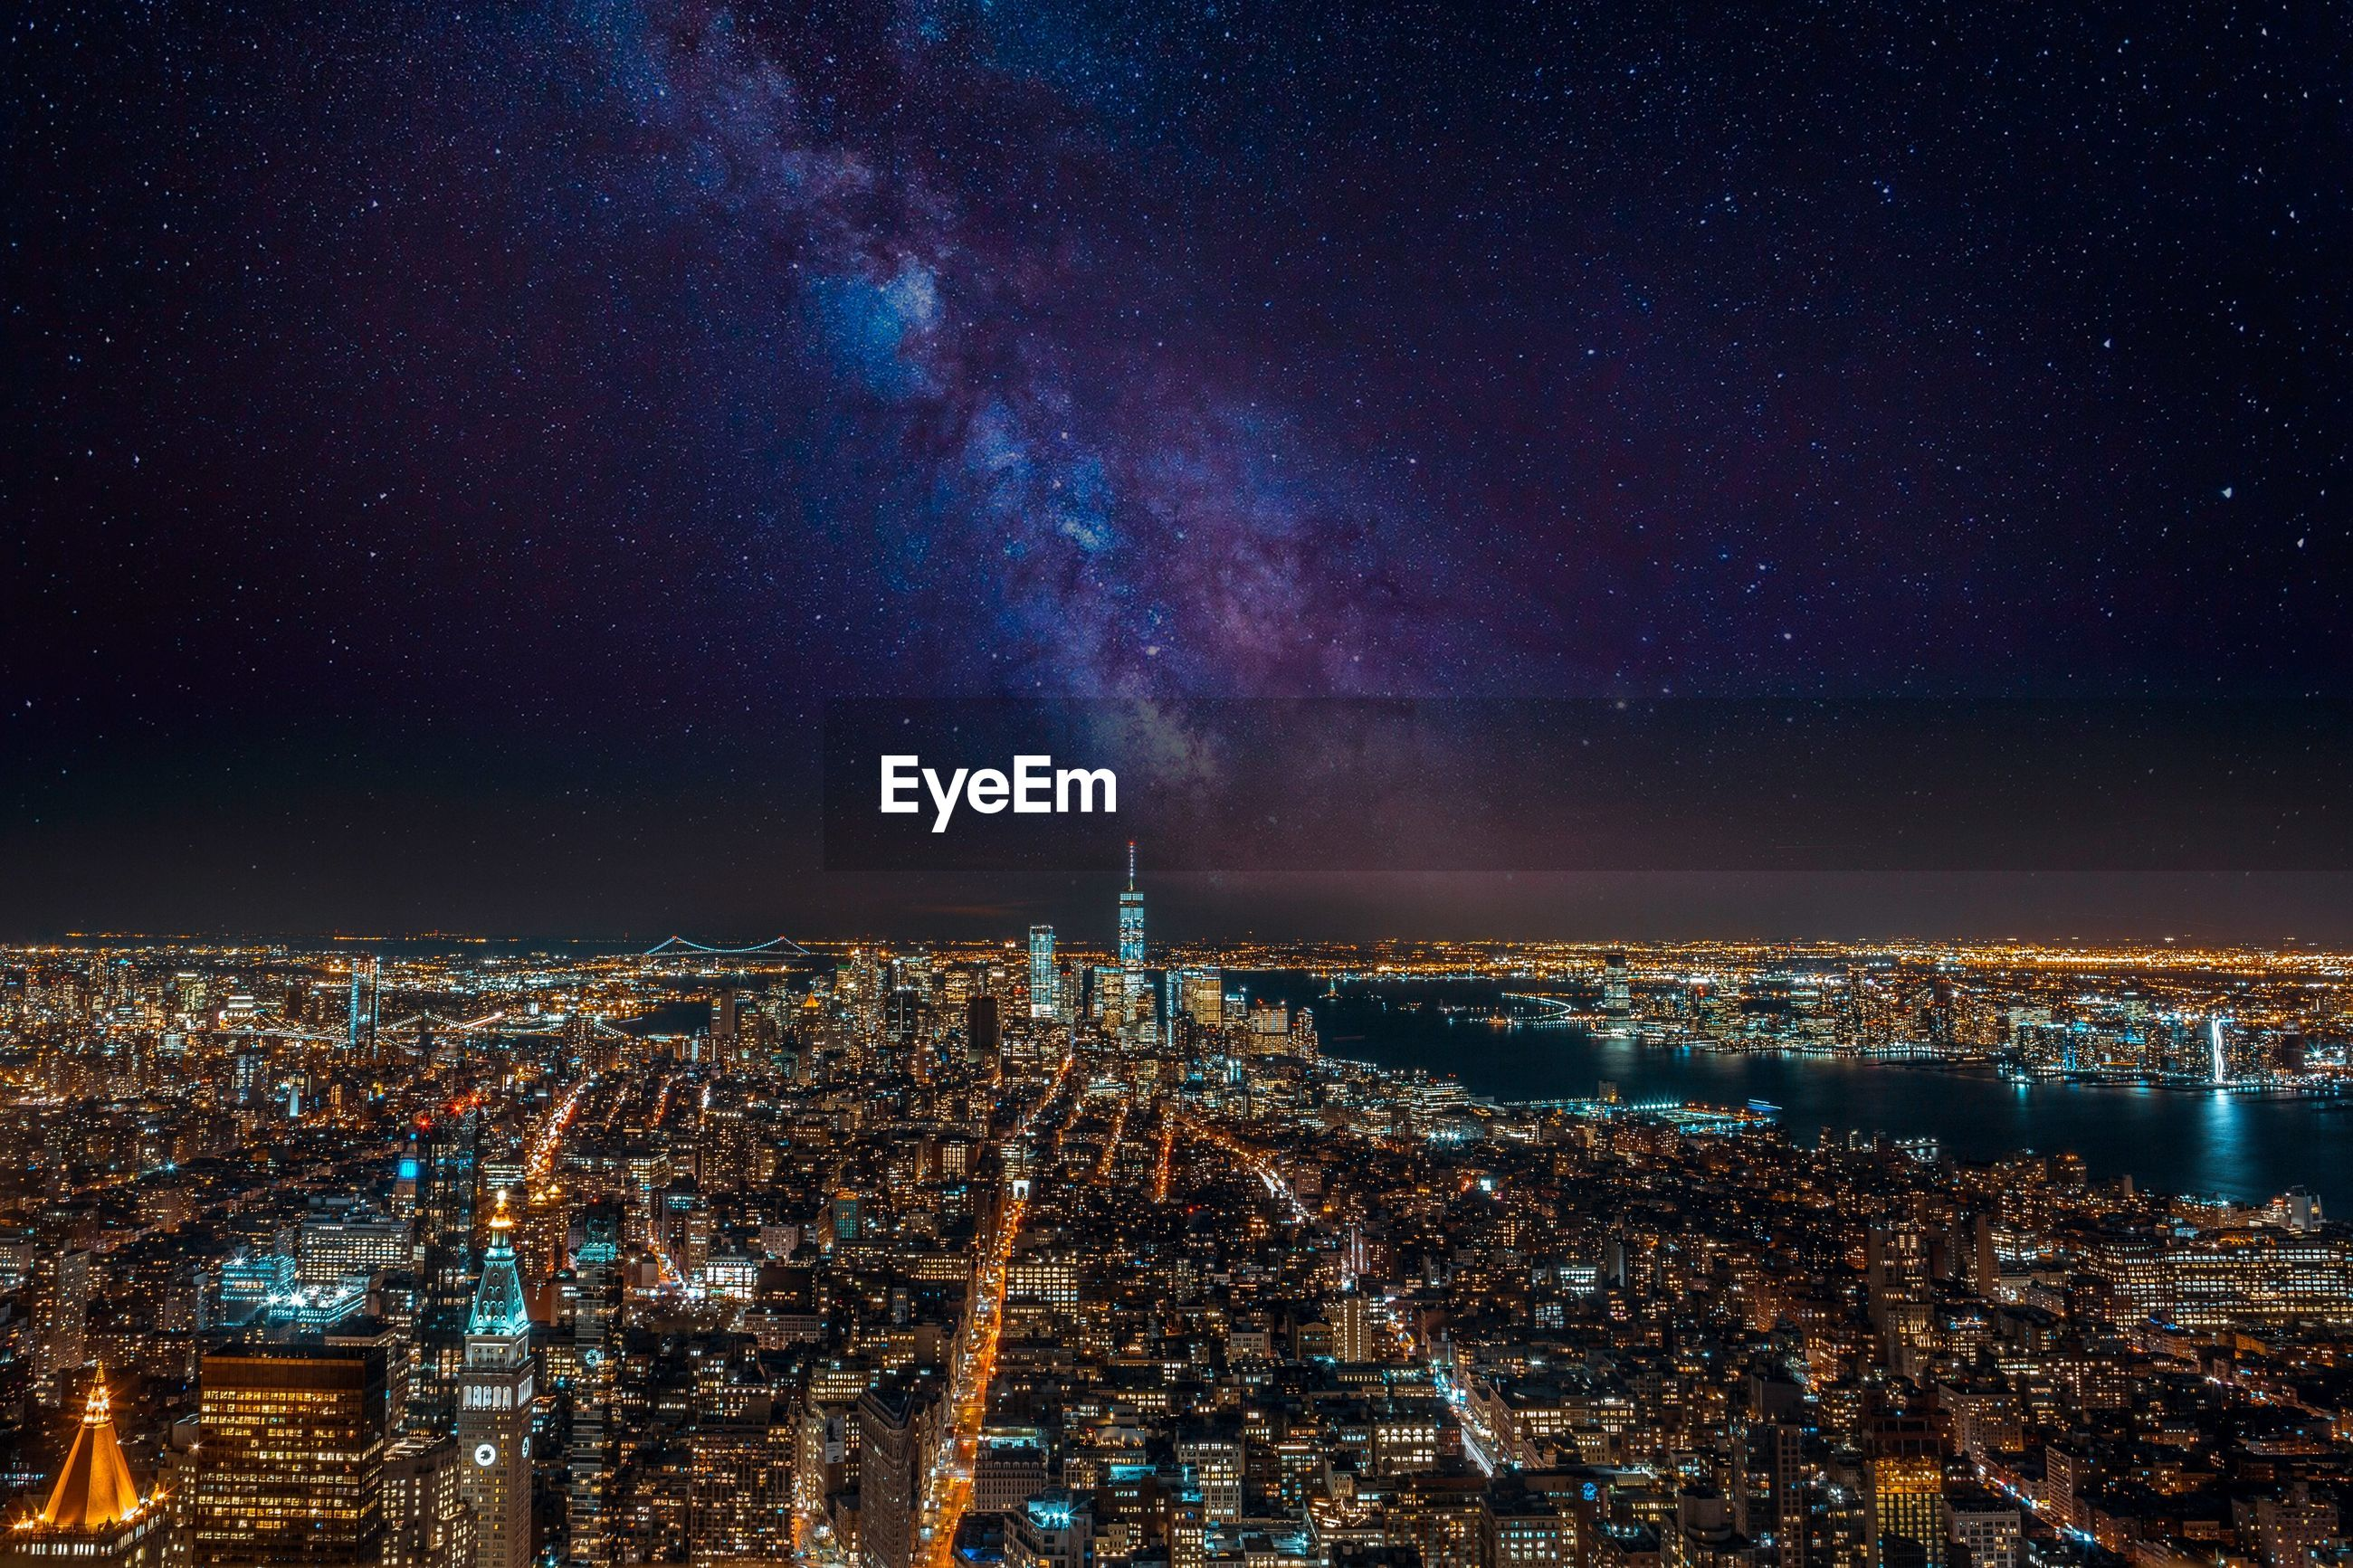 AERIAL VIEW OF ILLUMINATED CITY AGAINST SKY